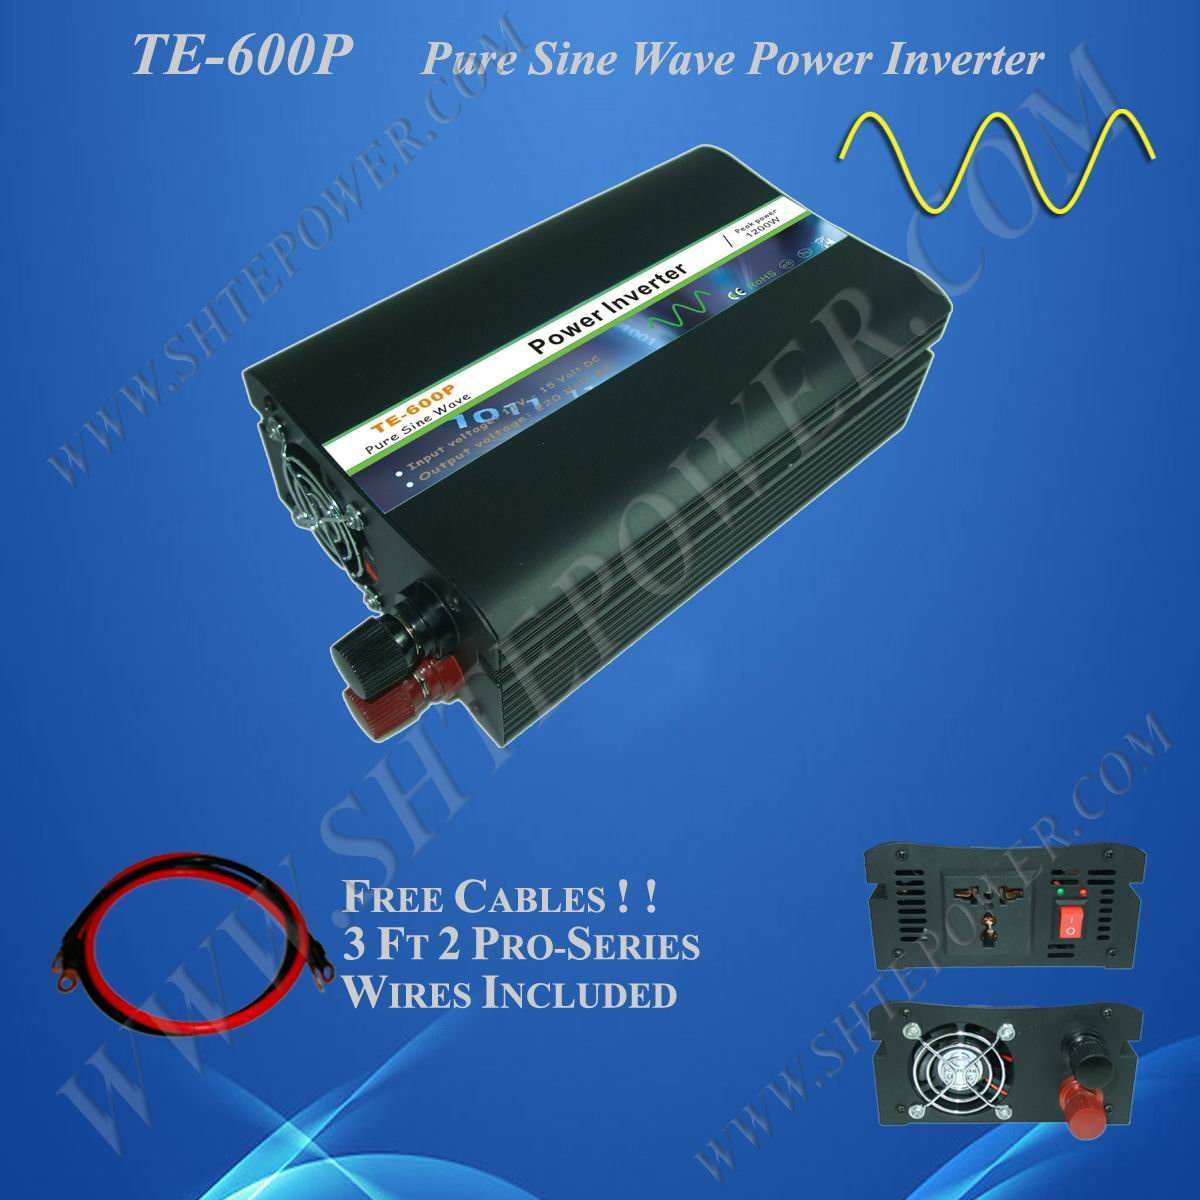 Home power inverter/ dc-ac power inverter/ pure sine wave solar inverter 24v to 230v 600w 500w 12vdc 220vac pure sine wave inverter without ac charge home inverter